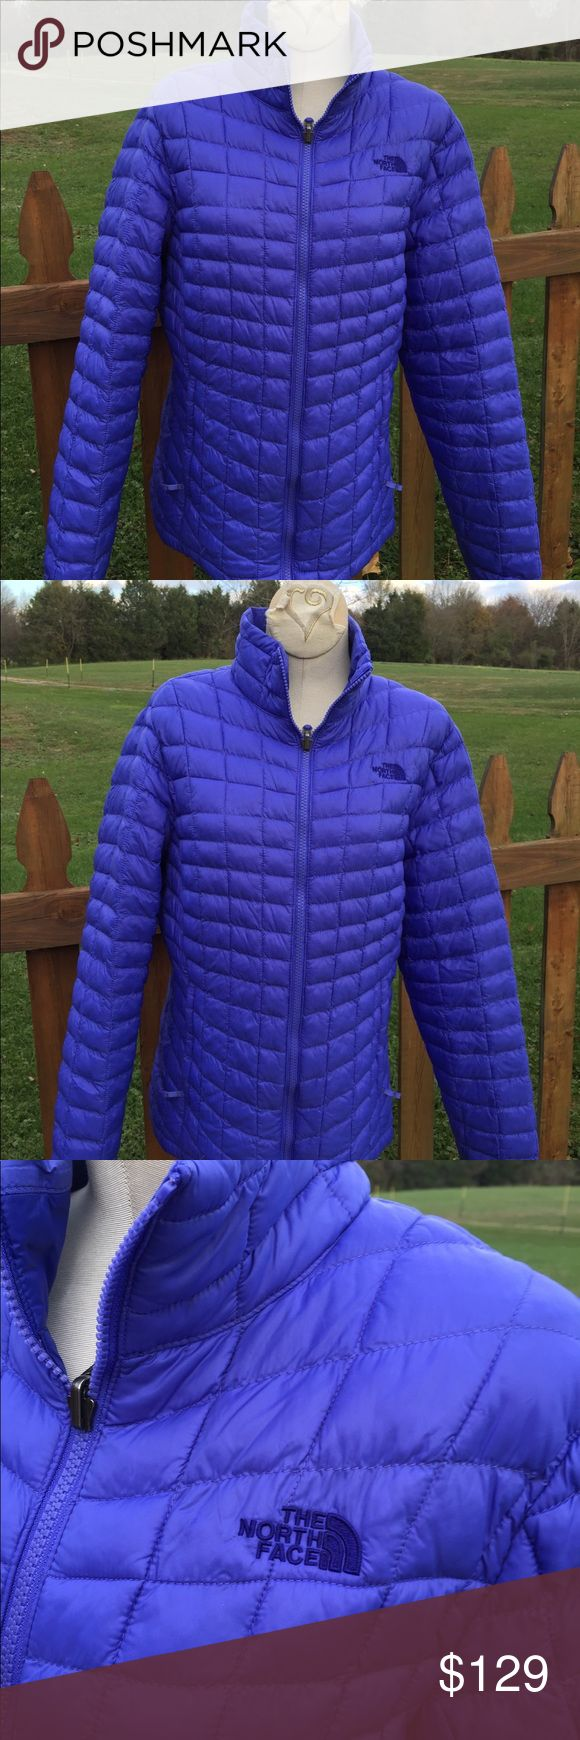 The North Face Thermoball Jacket Size Large Size large. Purplish/bluish color. . Super gently preowned. Be sure to view the other items in our closet. We offer  women's, Mens and kids items in a variety of sizes. Bundle and save!! We love reasonable offers!! Thank you for viewing our item!! The North Face Jackets & Coats